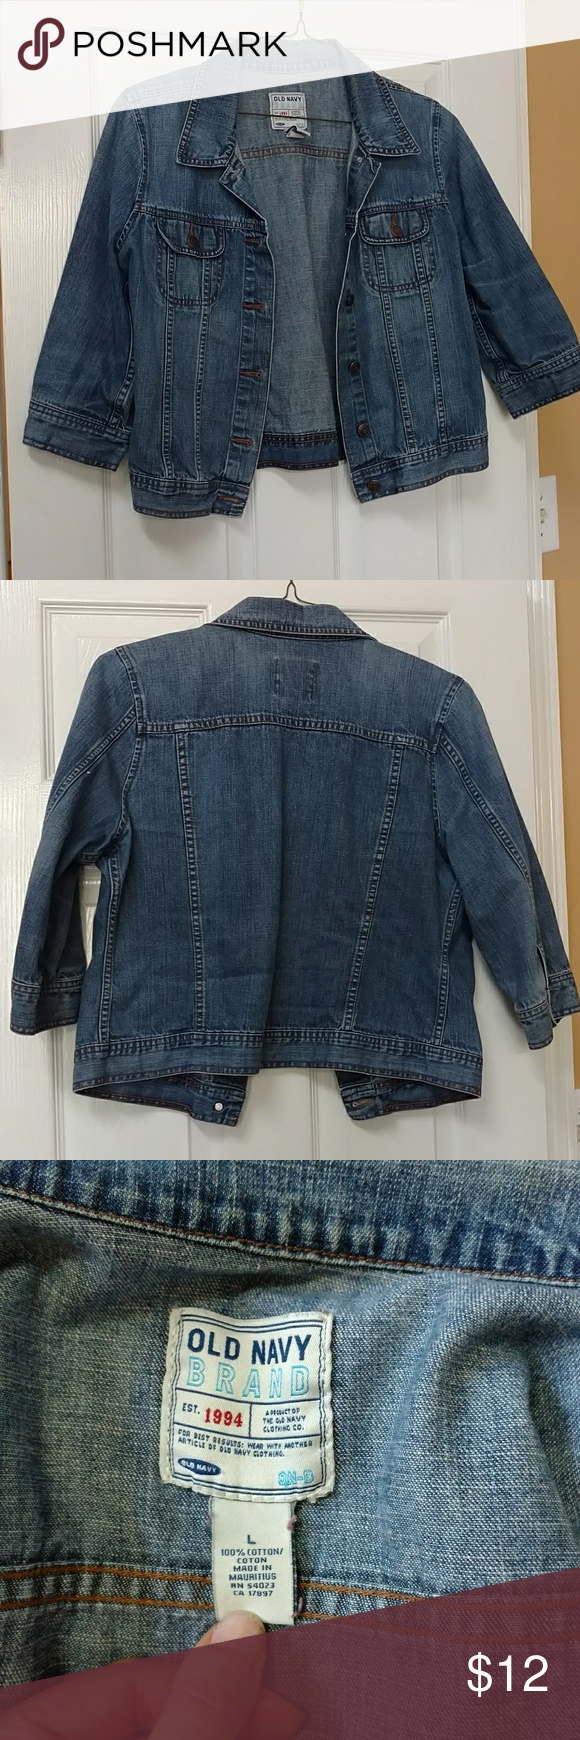 Old Navy Denim 3/4 sleeve jacket Cute denim jacket with 3/4 sleeves... Roll them for a longer short sleeved look, or wear as is. Broken in and soft... You'll love it. Old Navy Jackets & Coats Jean Jackets